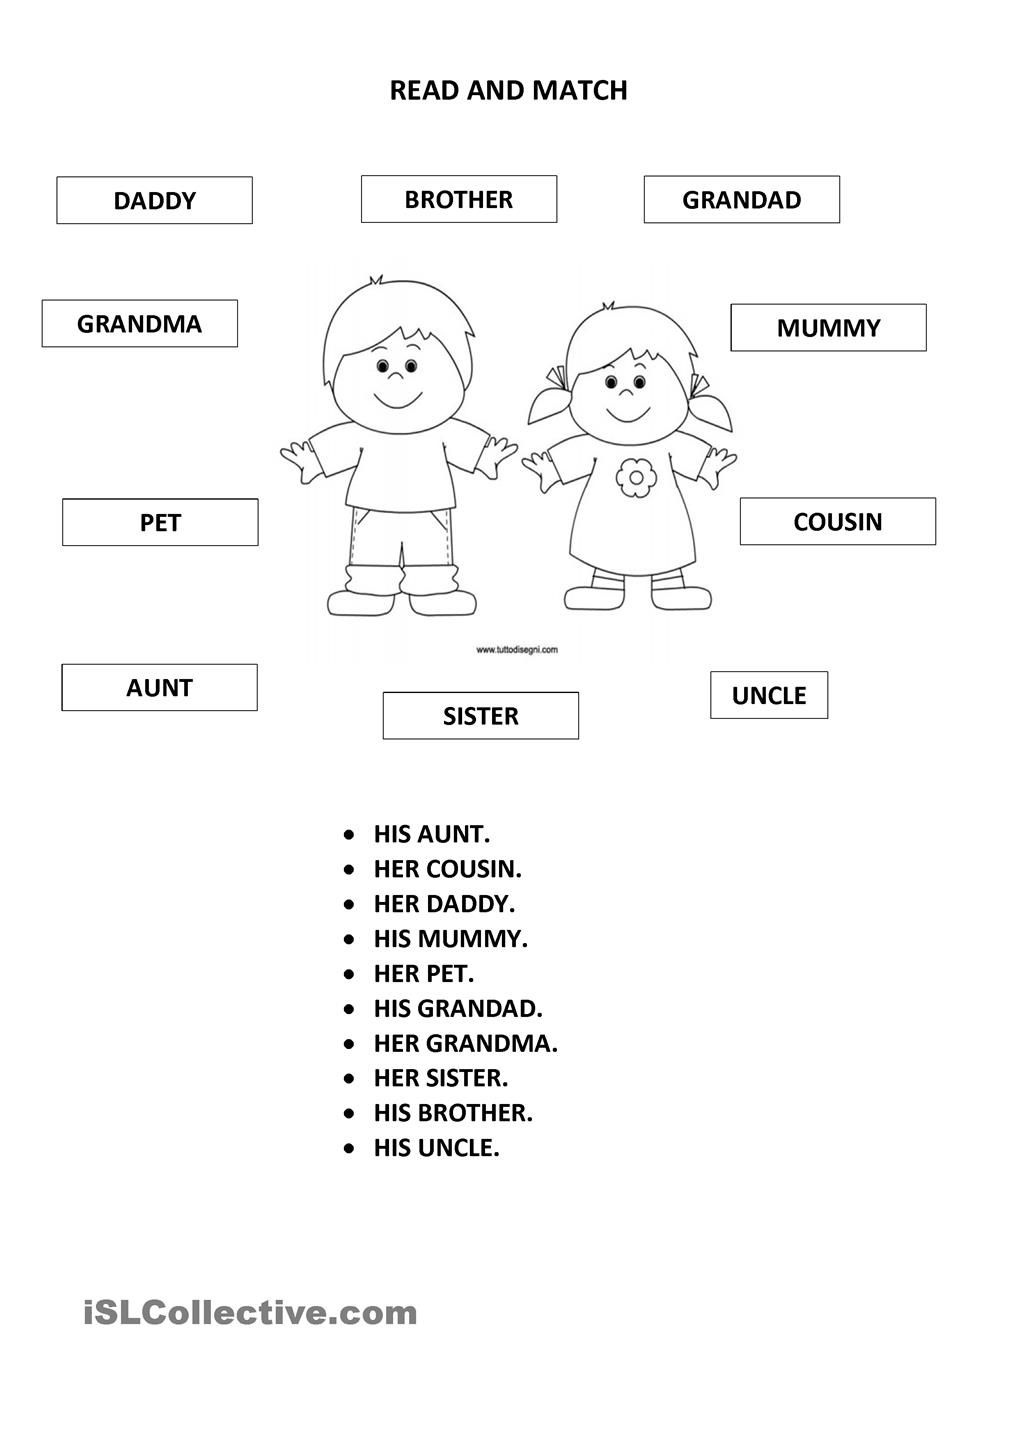 His her 2 family members family pinterest comprehension family members worksheet free esl printable worksheets made by teachers kristyandbryce Images